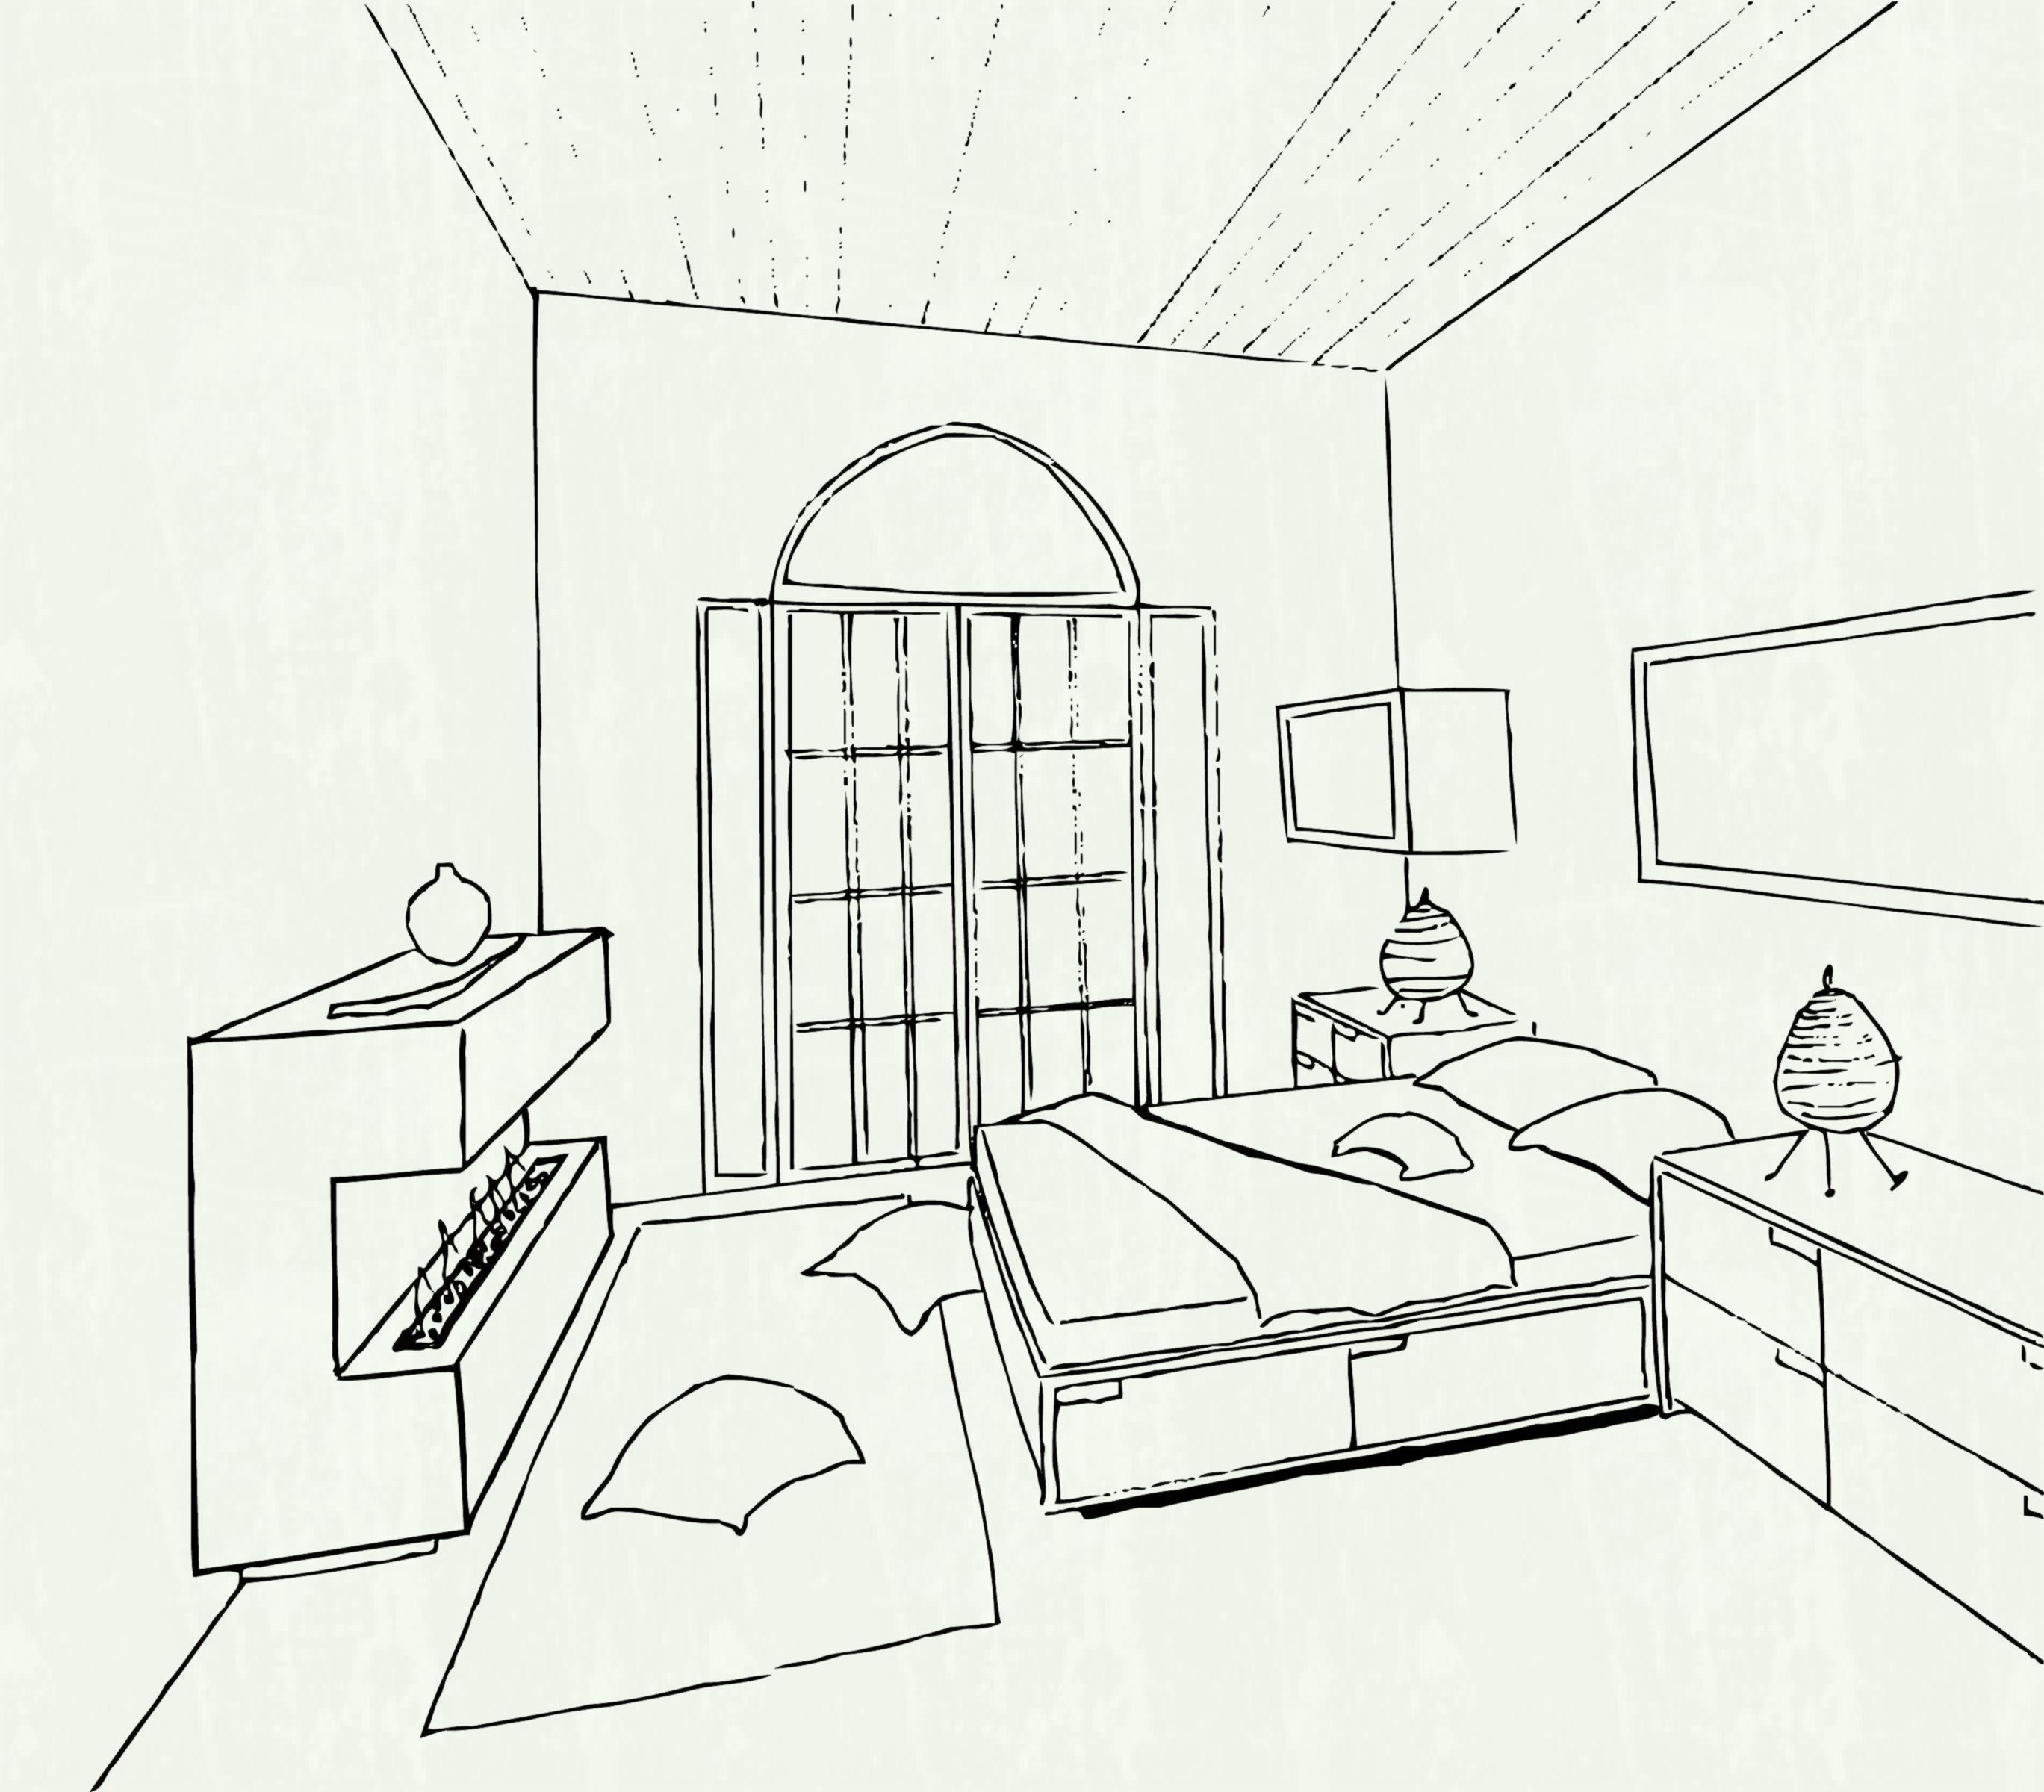 Furniture design drawing at getdrawings free for personal use